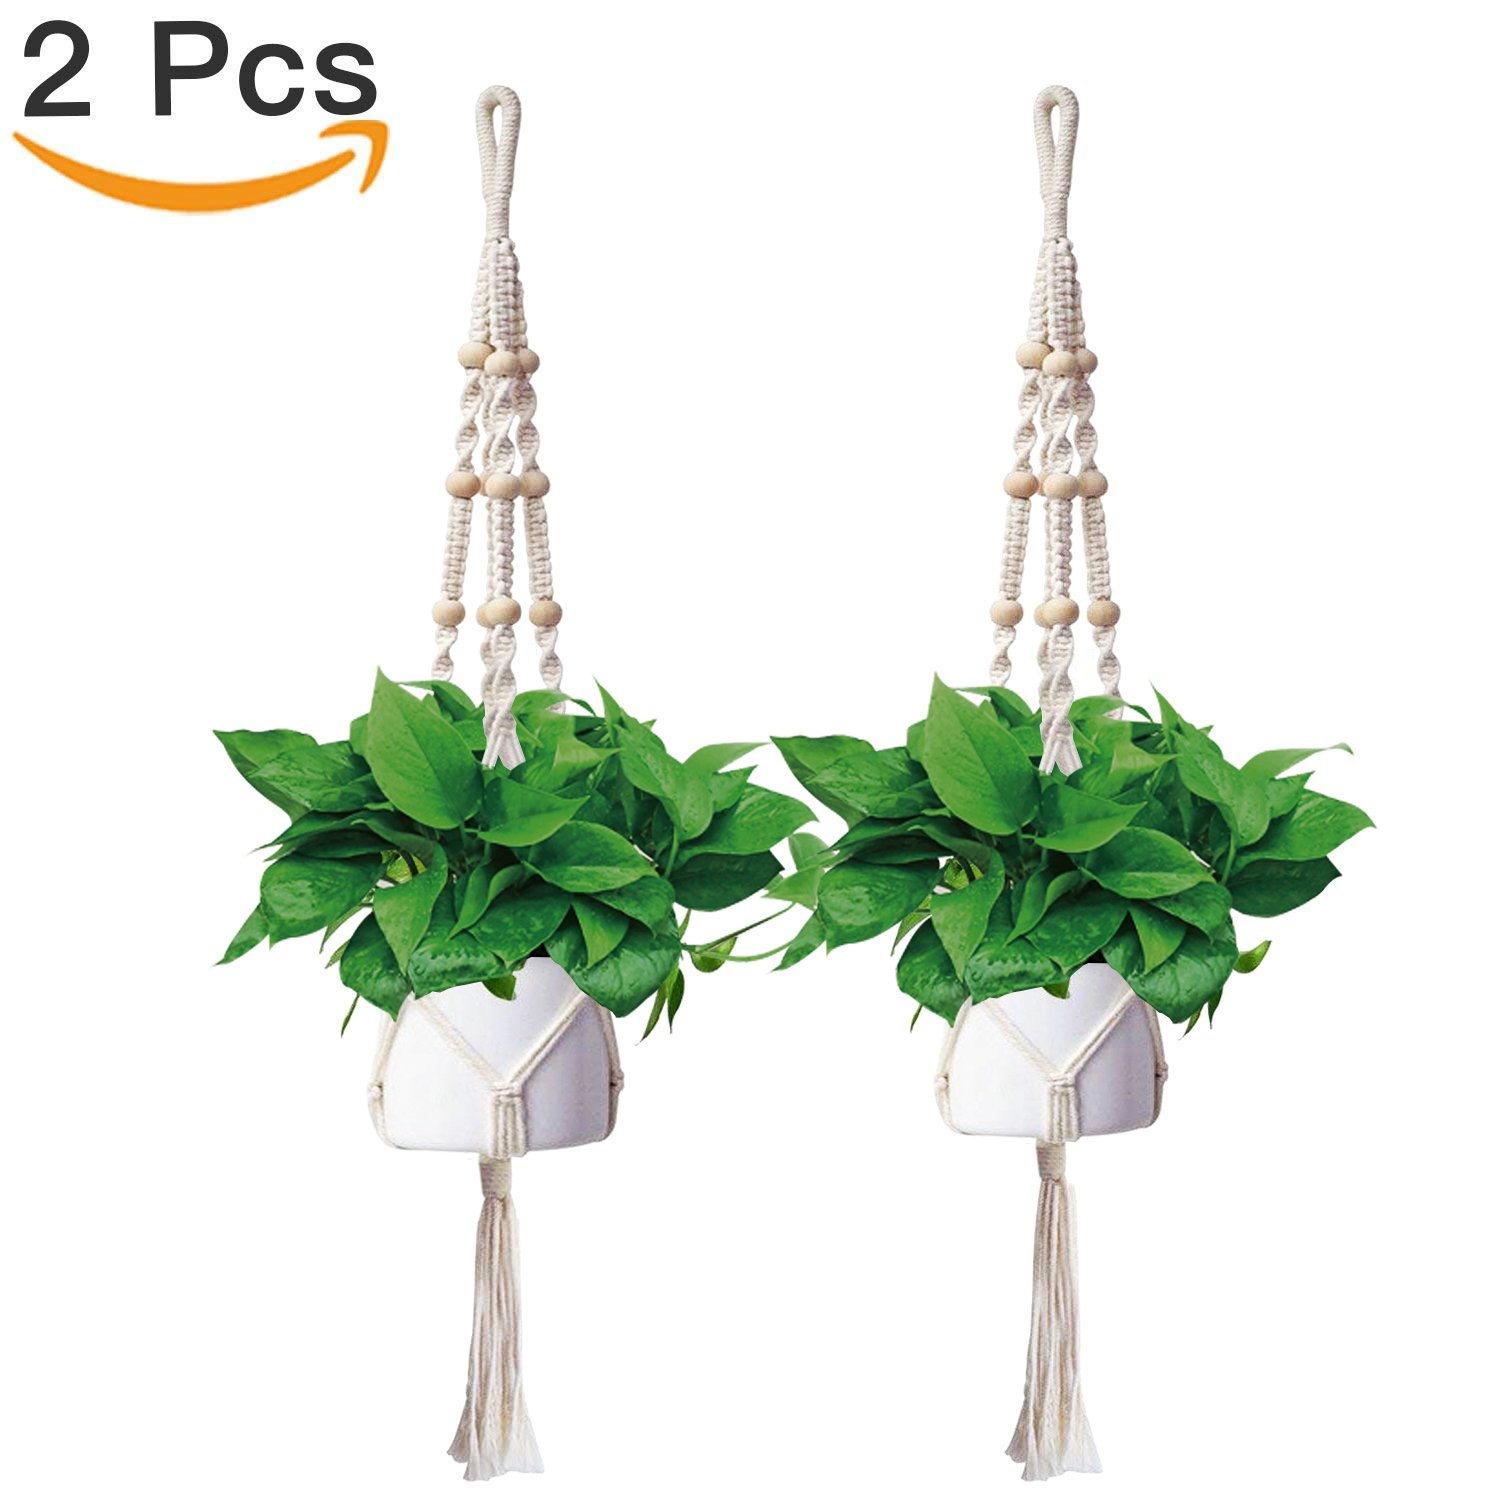 Anglink Hanging Plant Holders, 46 Inch (2 Pack) Outdoor Indoor Macrame Plant Hangers Rope Holder for Plant Pot Cotton Rope, 4 Legs